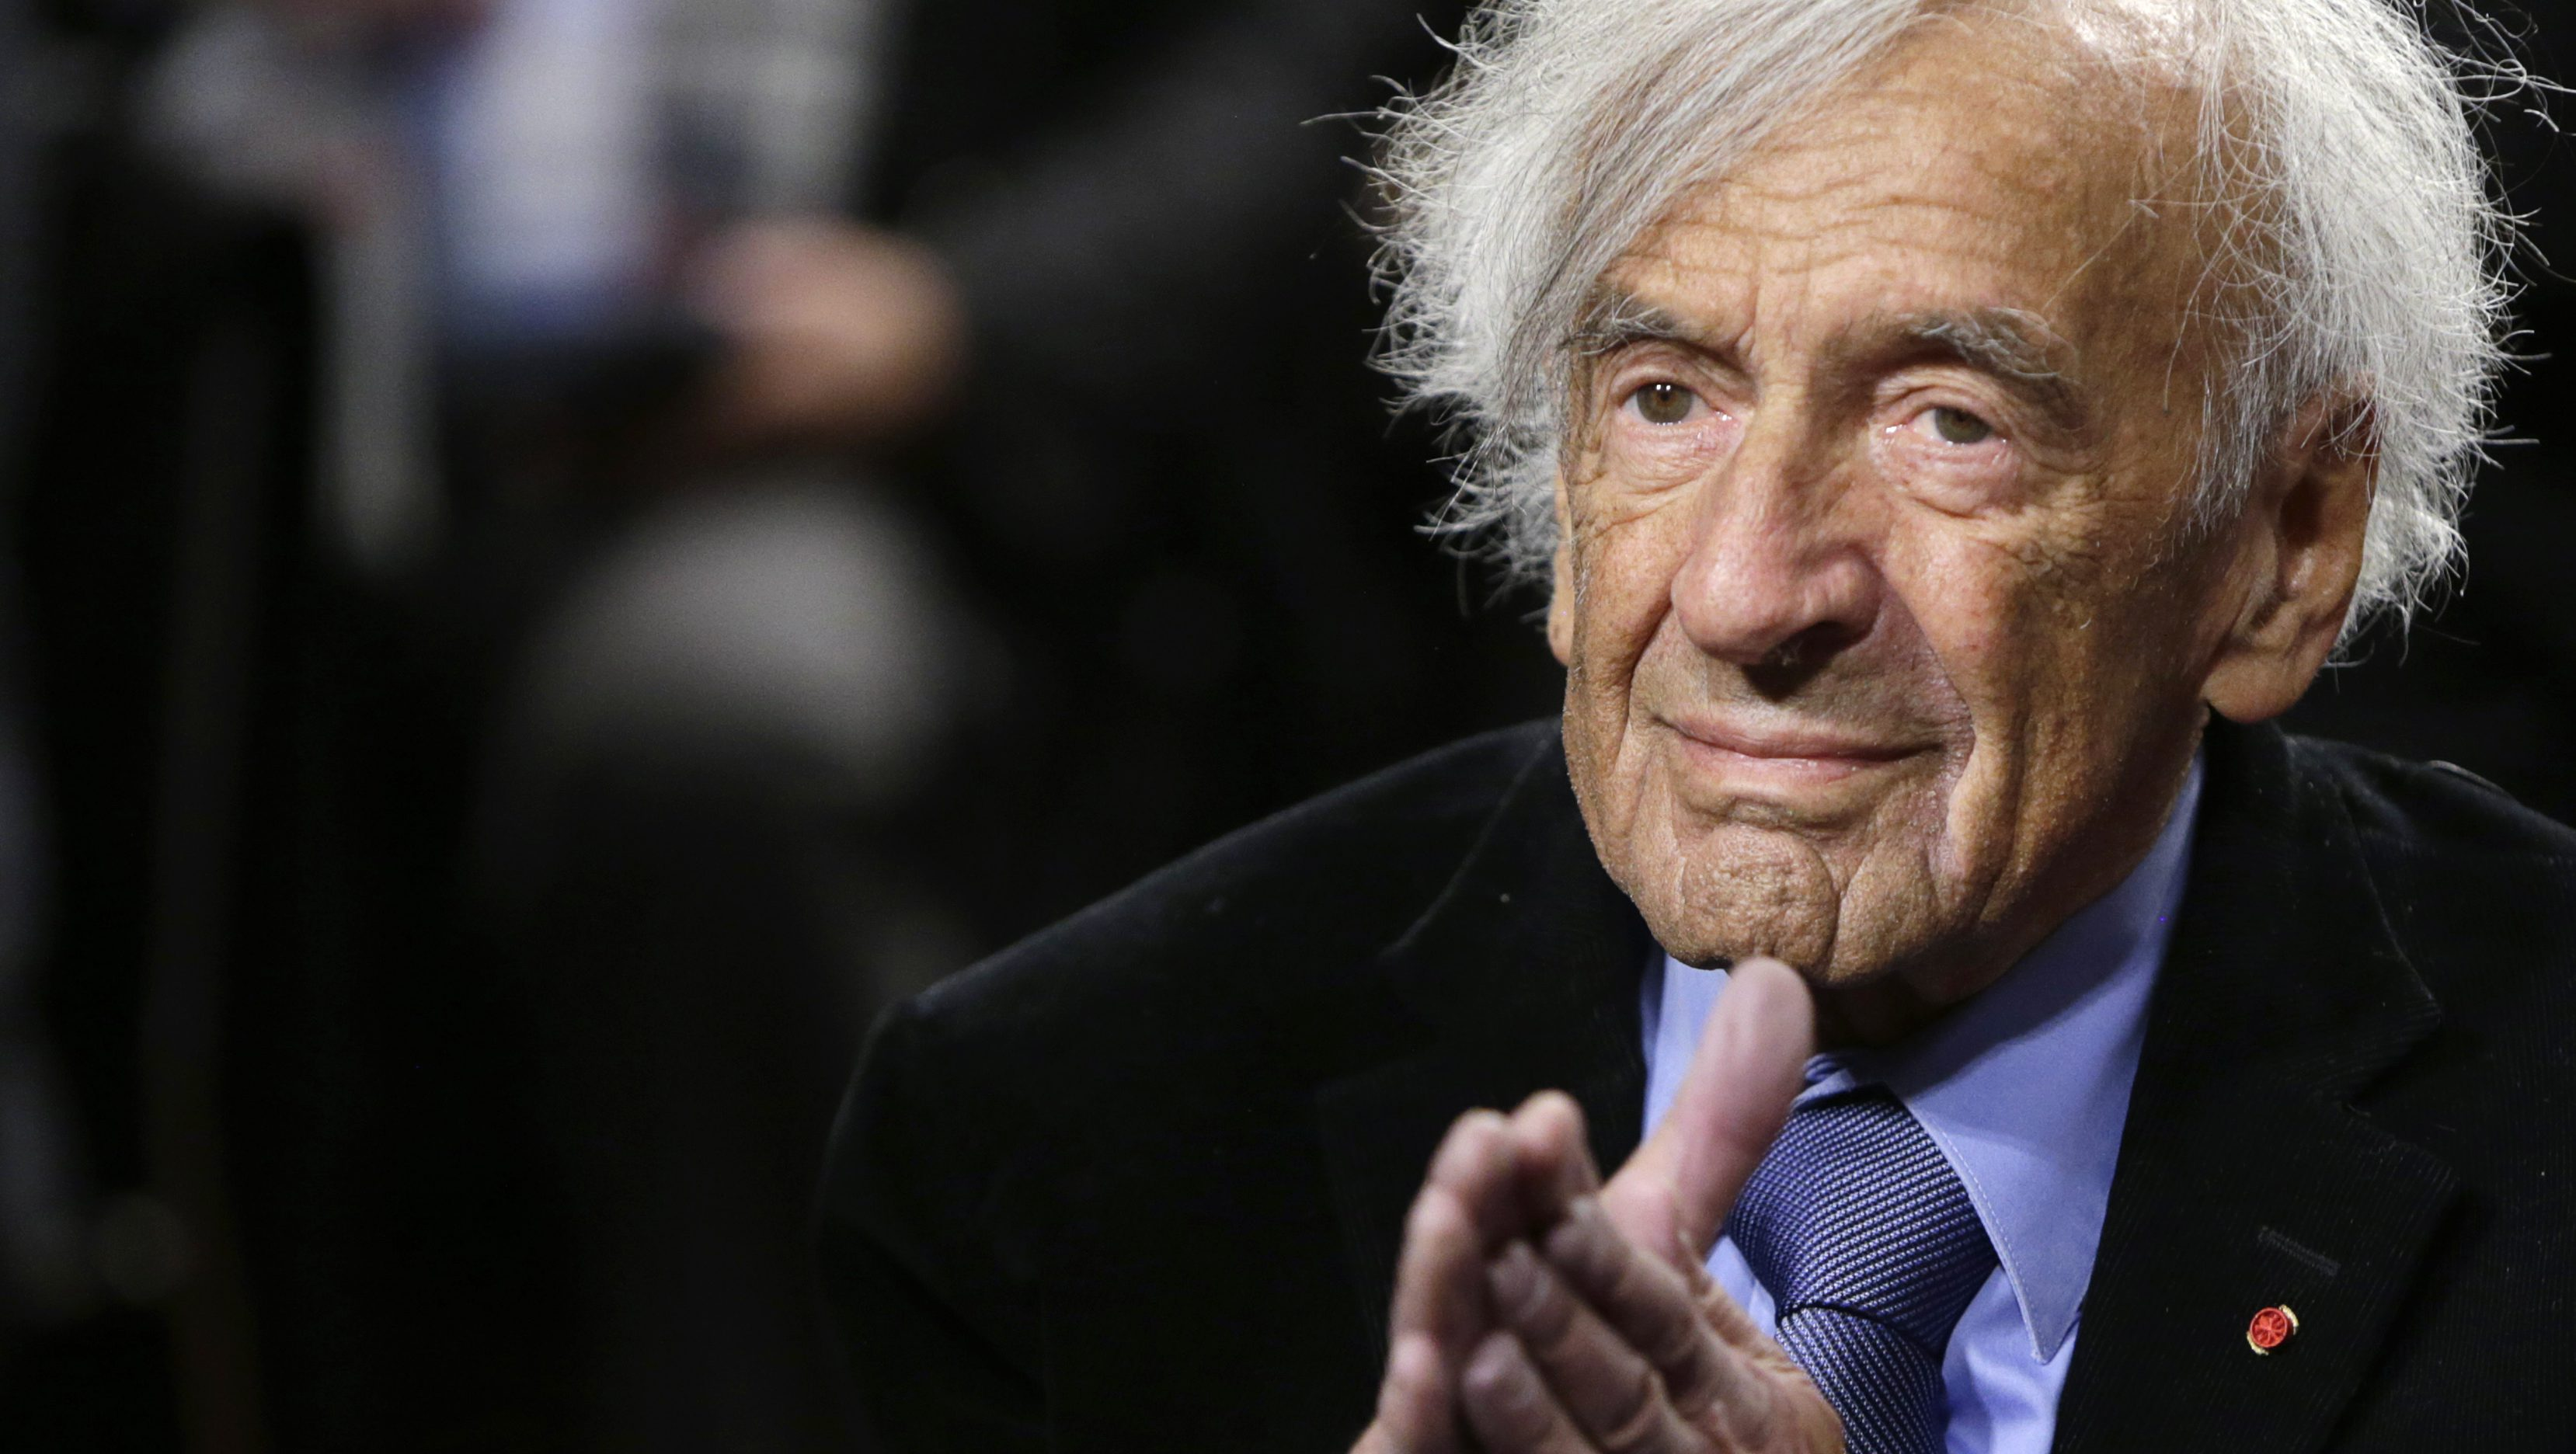 Nobel Peace Laureate Wiesel is seen before participating in a roundtable discussion on Capitol Hill in Washington